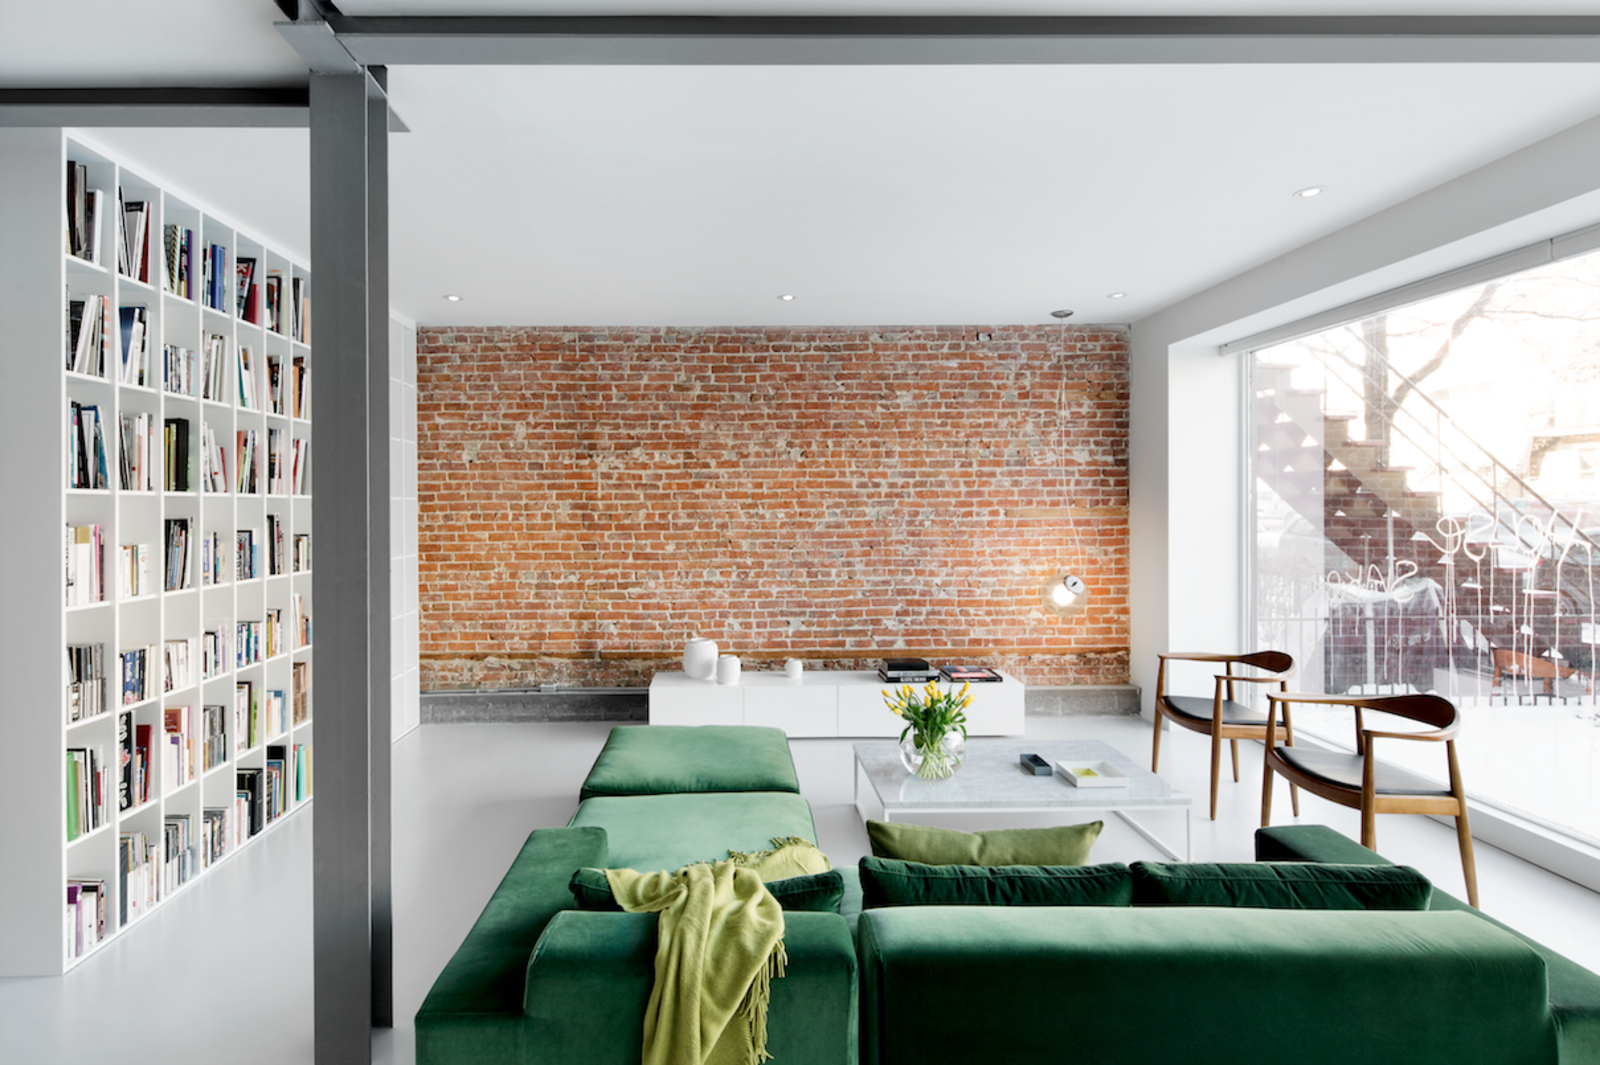 Goneau highlighted the red brick wall in the living room by leaving it bare and protecting it behind museum-quality glass. The space also features a floor-to-ceiling window that's coated on the outside with a reflective film, letting residents keep their curtains open by day without fear of being seen from the street. The green sofa is by St-Laurent Domison and the white oak chairs are by Hans Wegner. All other furniture is custom. Tagged: Living Room, Coffee Tables, Pendant Lighting, Bookcase, Chair, Console Tables, Sectional, and Concrete Floor.  Best Photos from A Futuristic Apartment with a Glass-Enclosed Bedroom